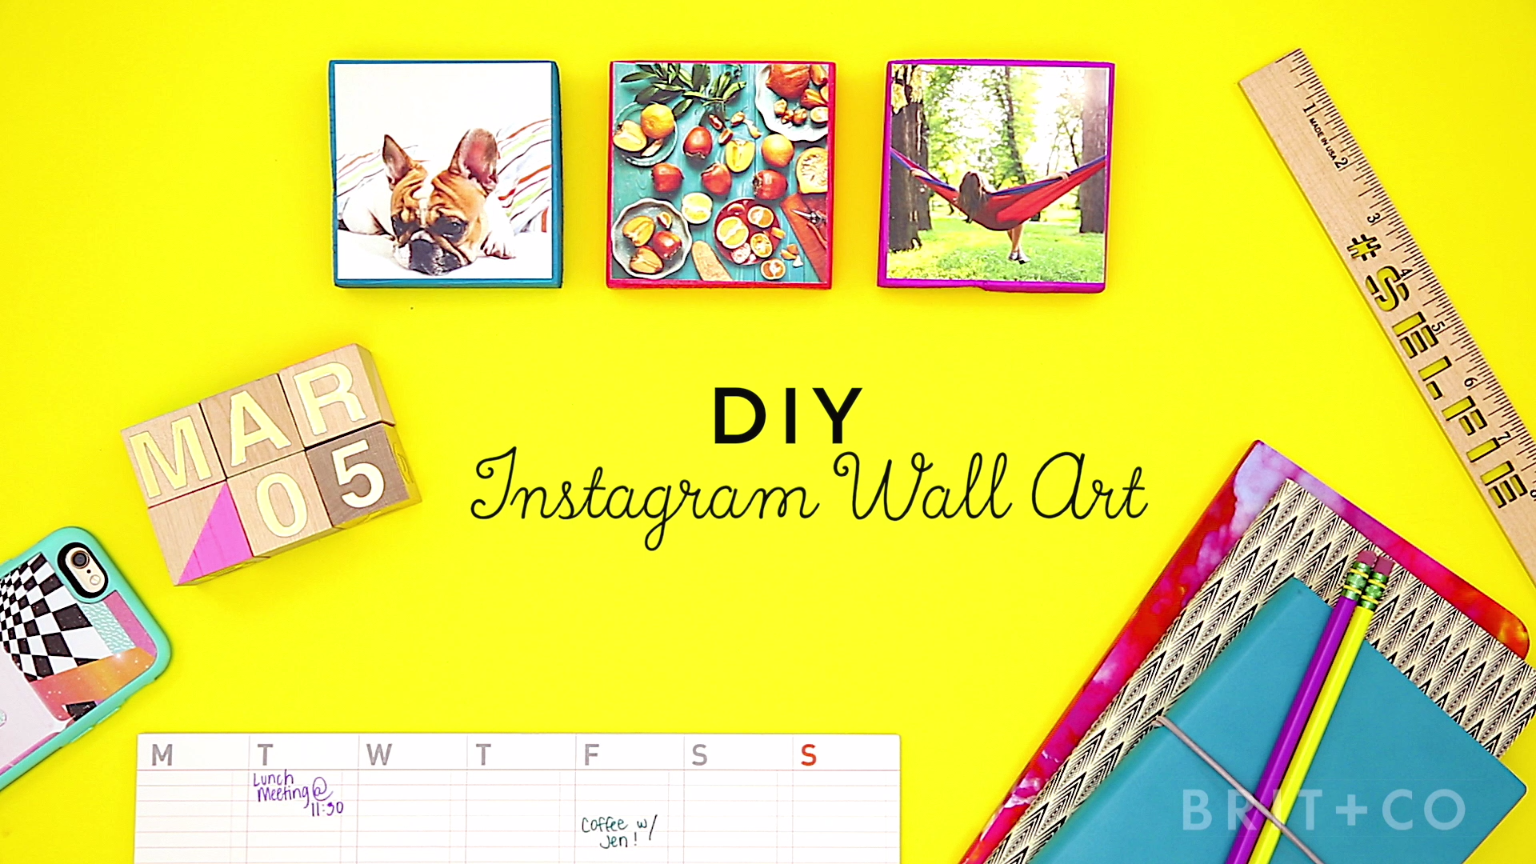 How to Make Instagram Wall Art | Learning, Tutorials and Easy